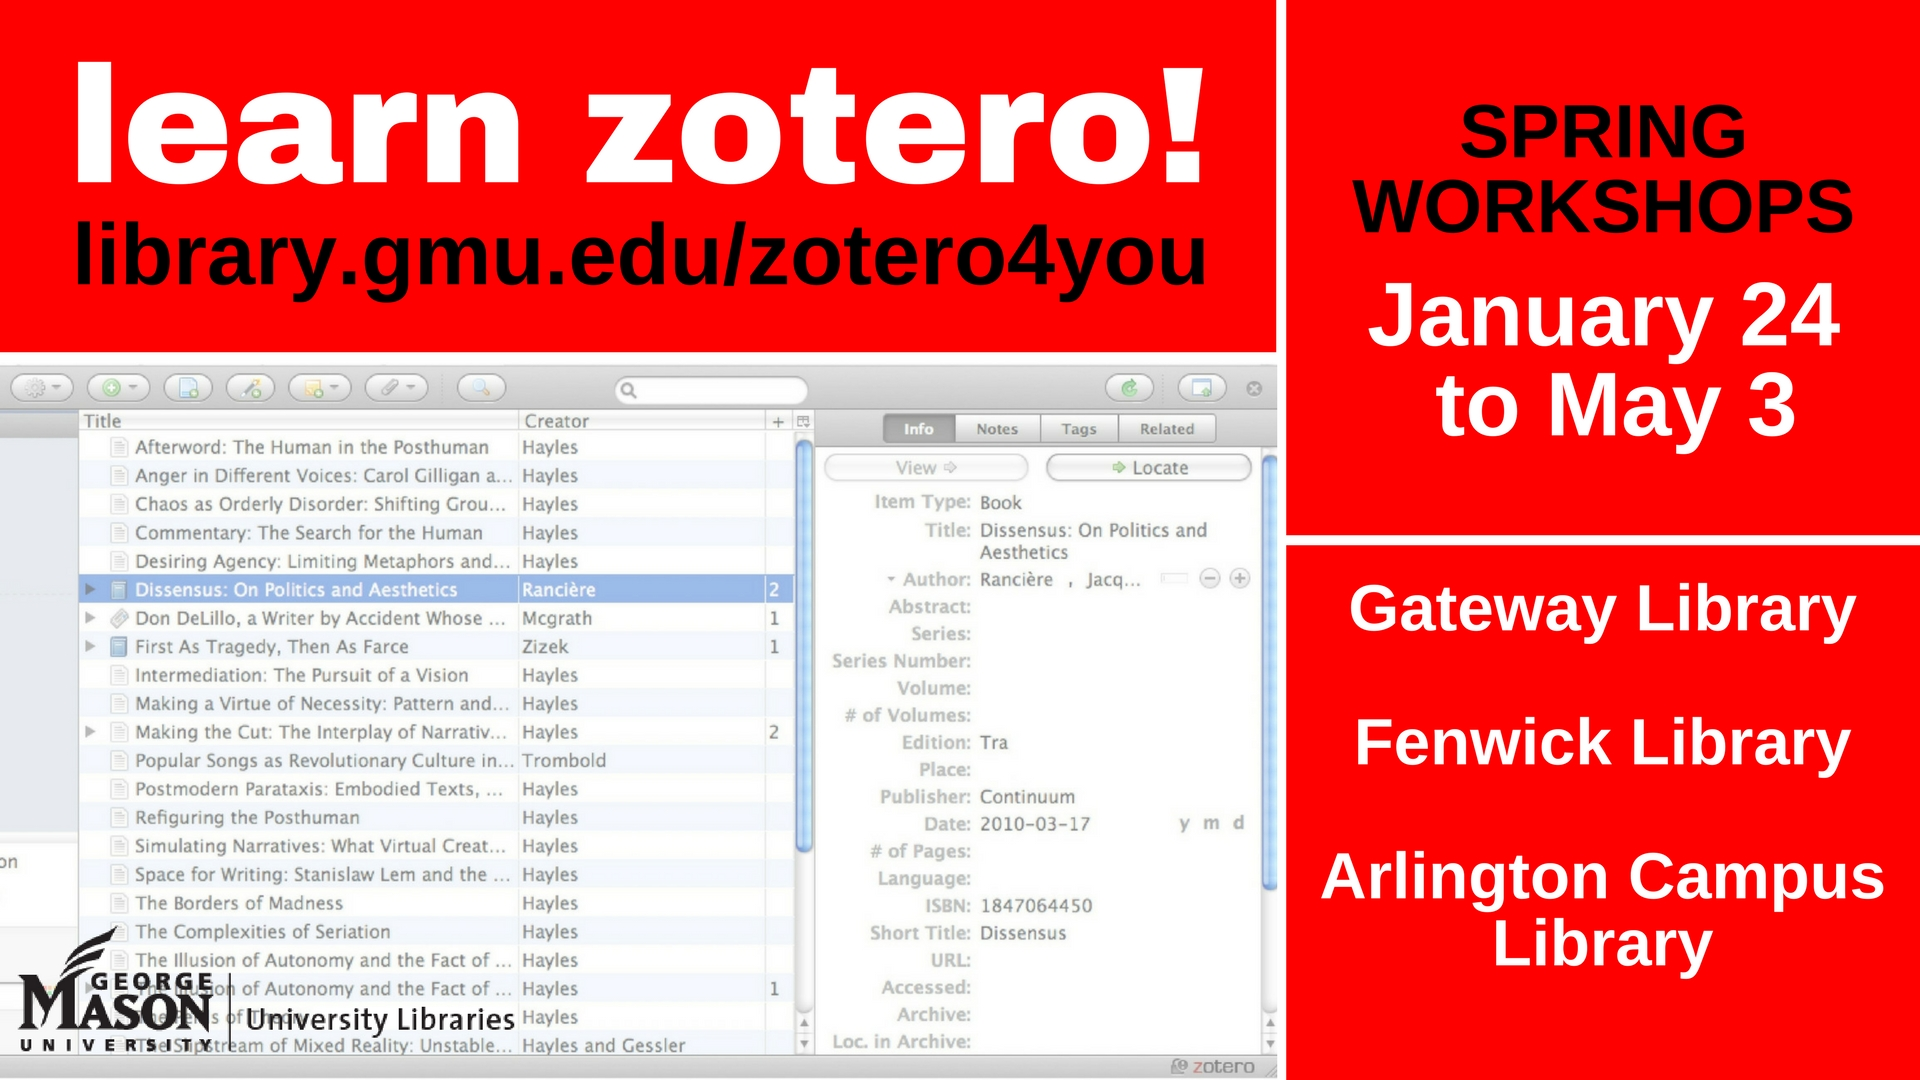 ****CANCELED****Zotero